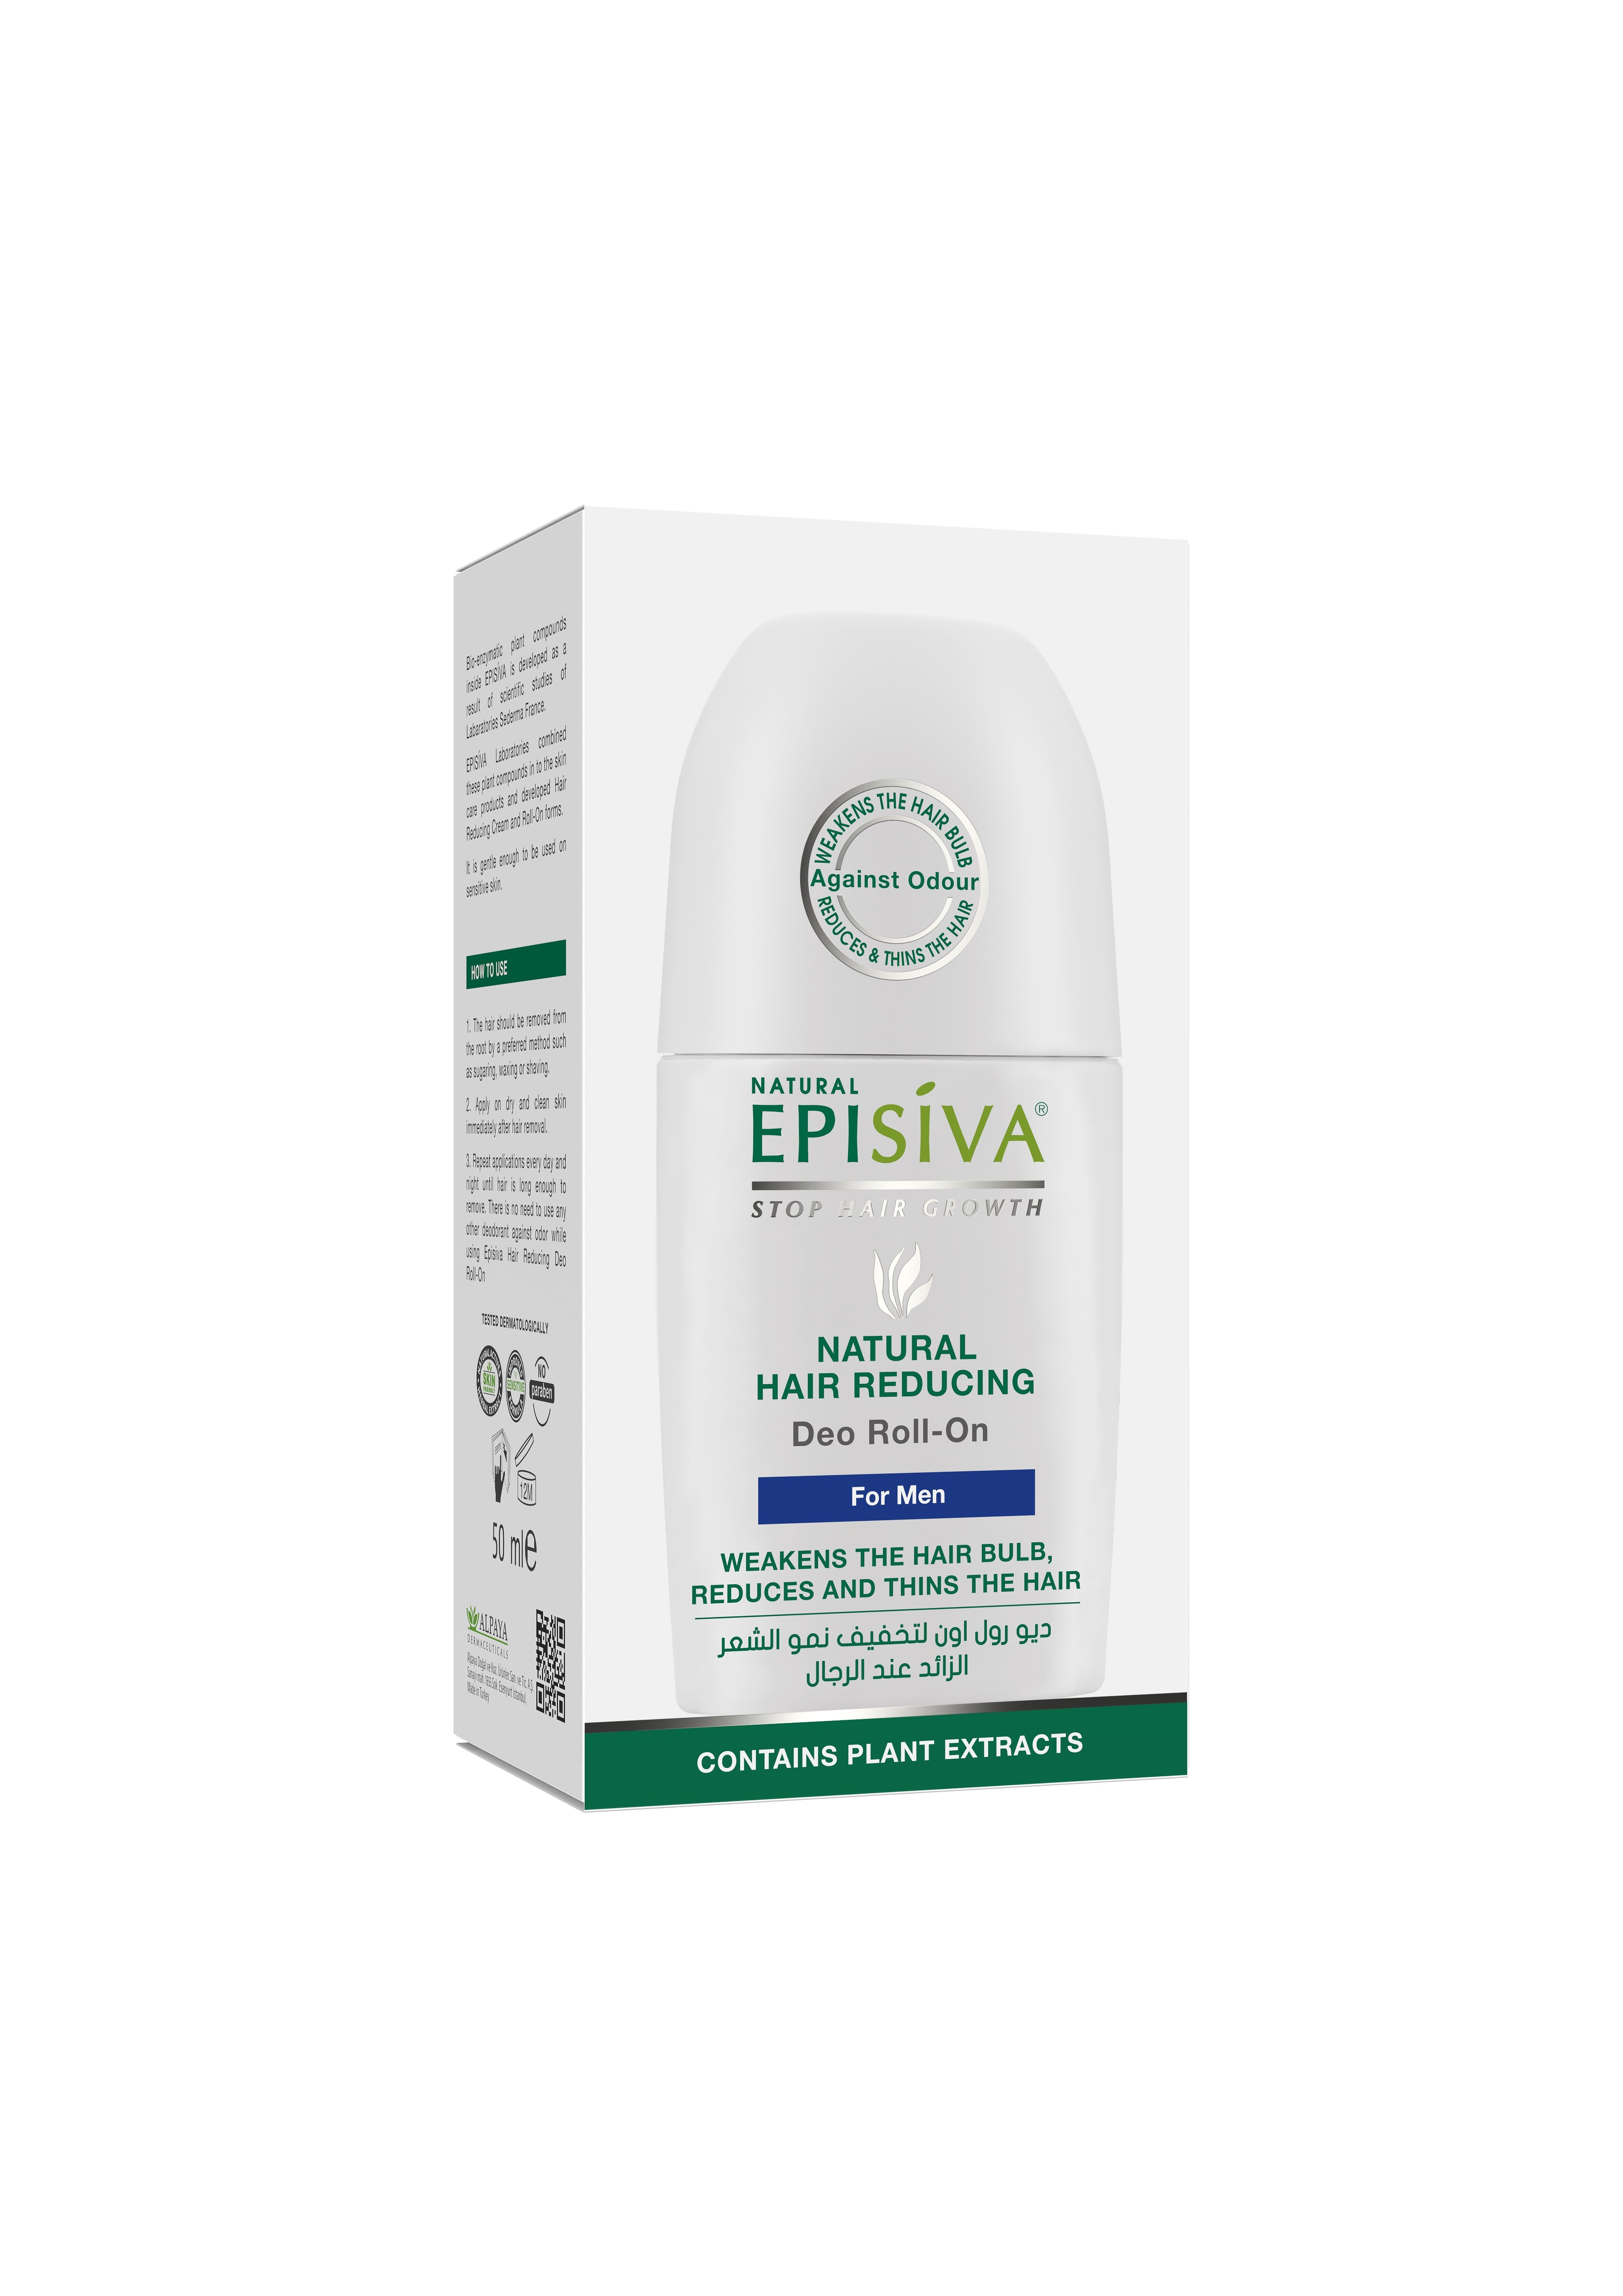 EPISIVA NATURAL HAIR REDUCING DEO ROLL-ON 50 ML FOR MEN